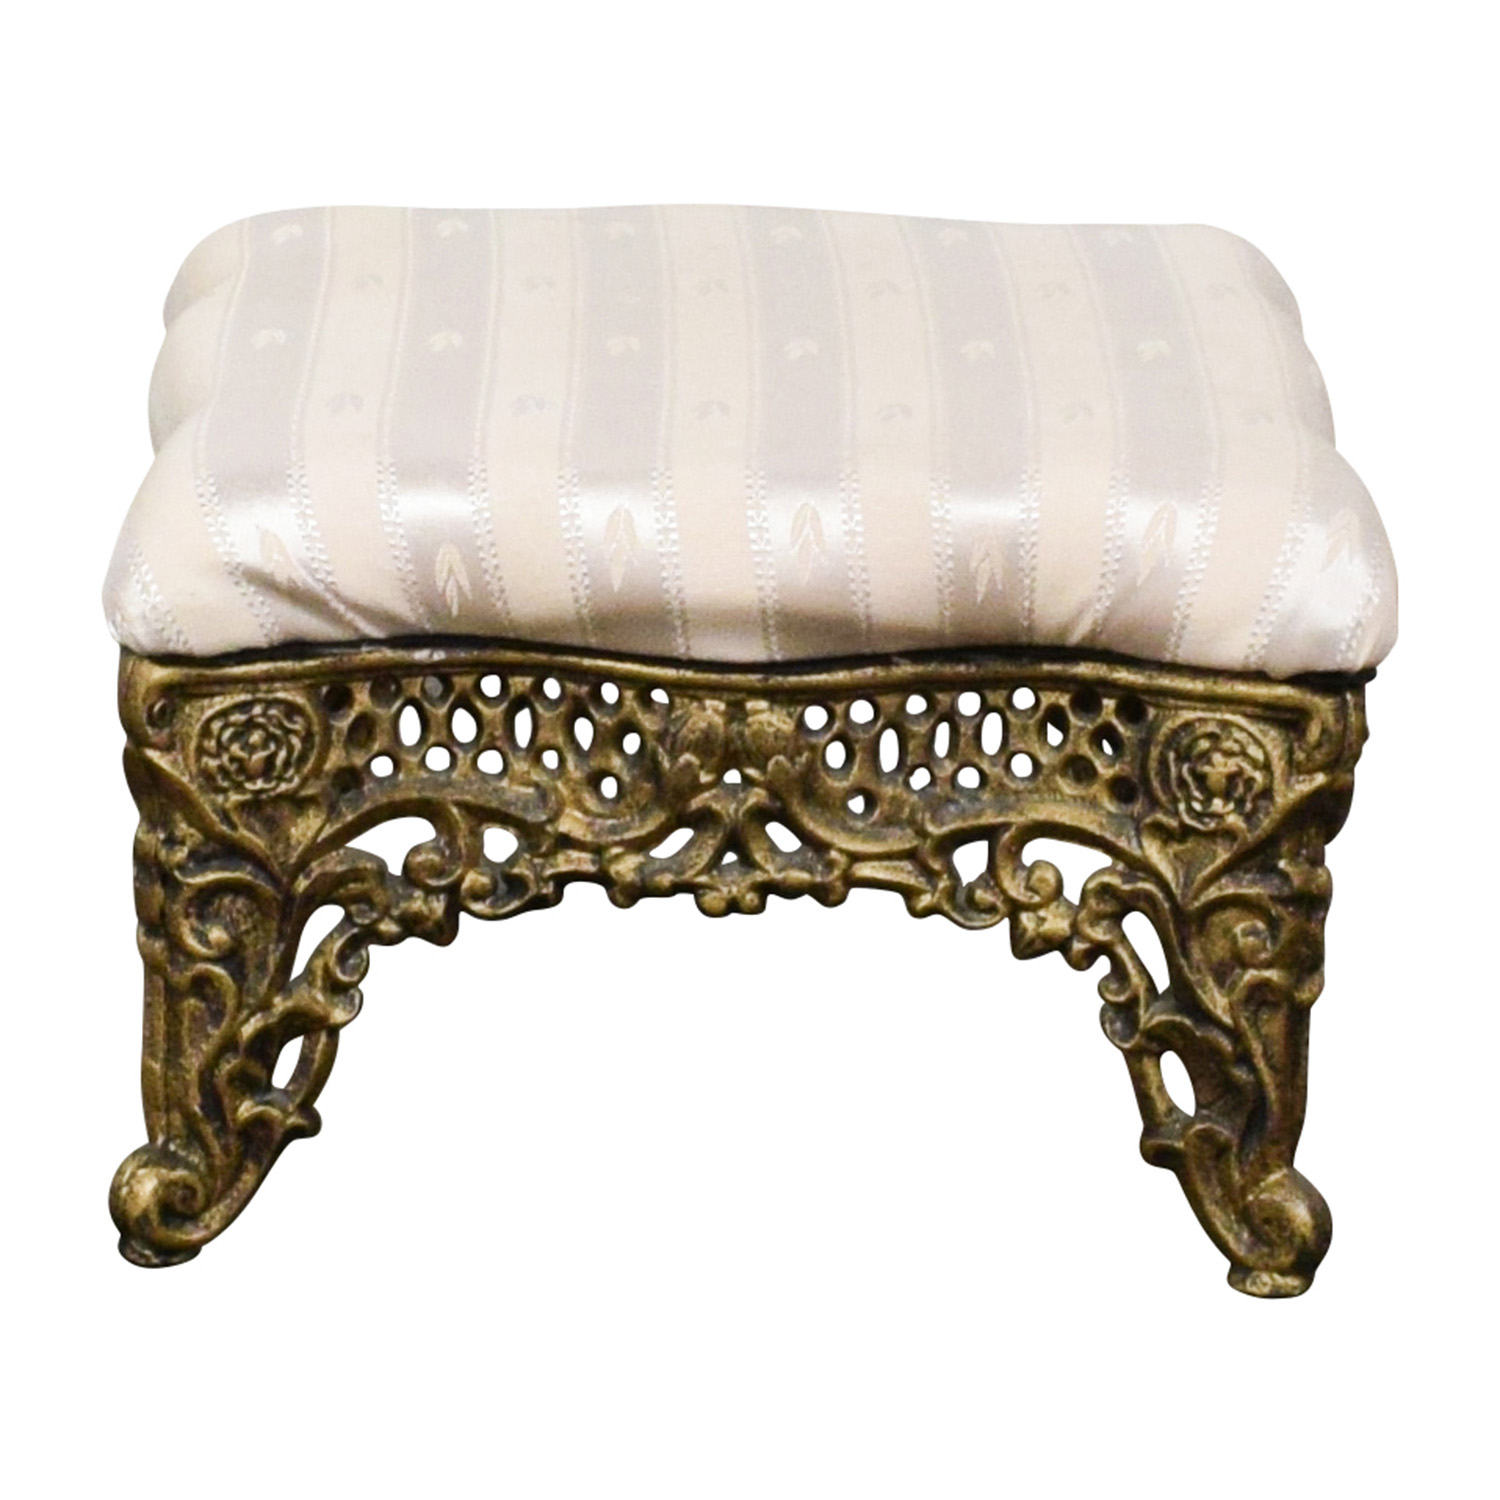 Horchow Beige Foot Stool with Gold Finish sale